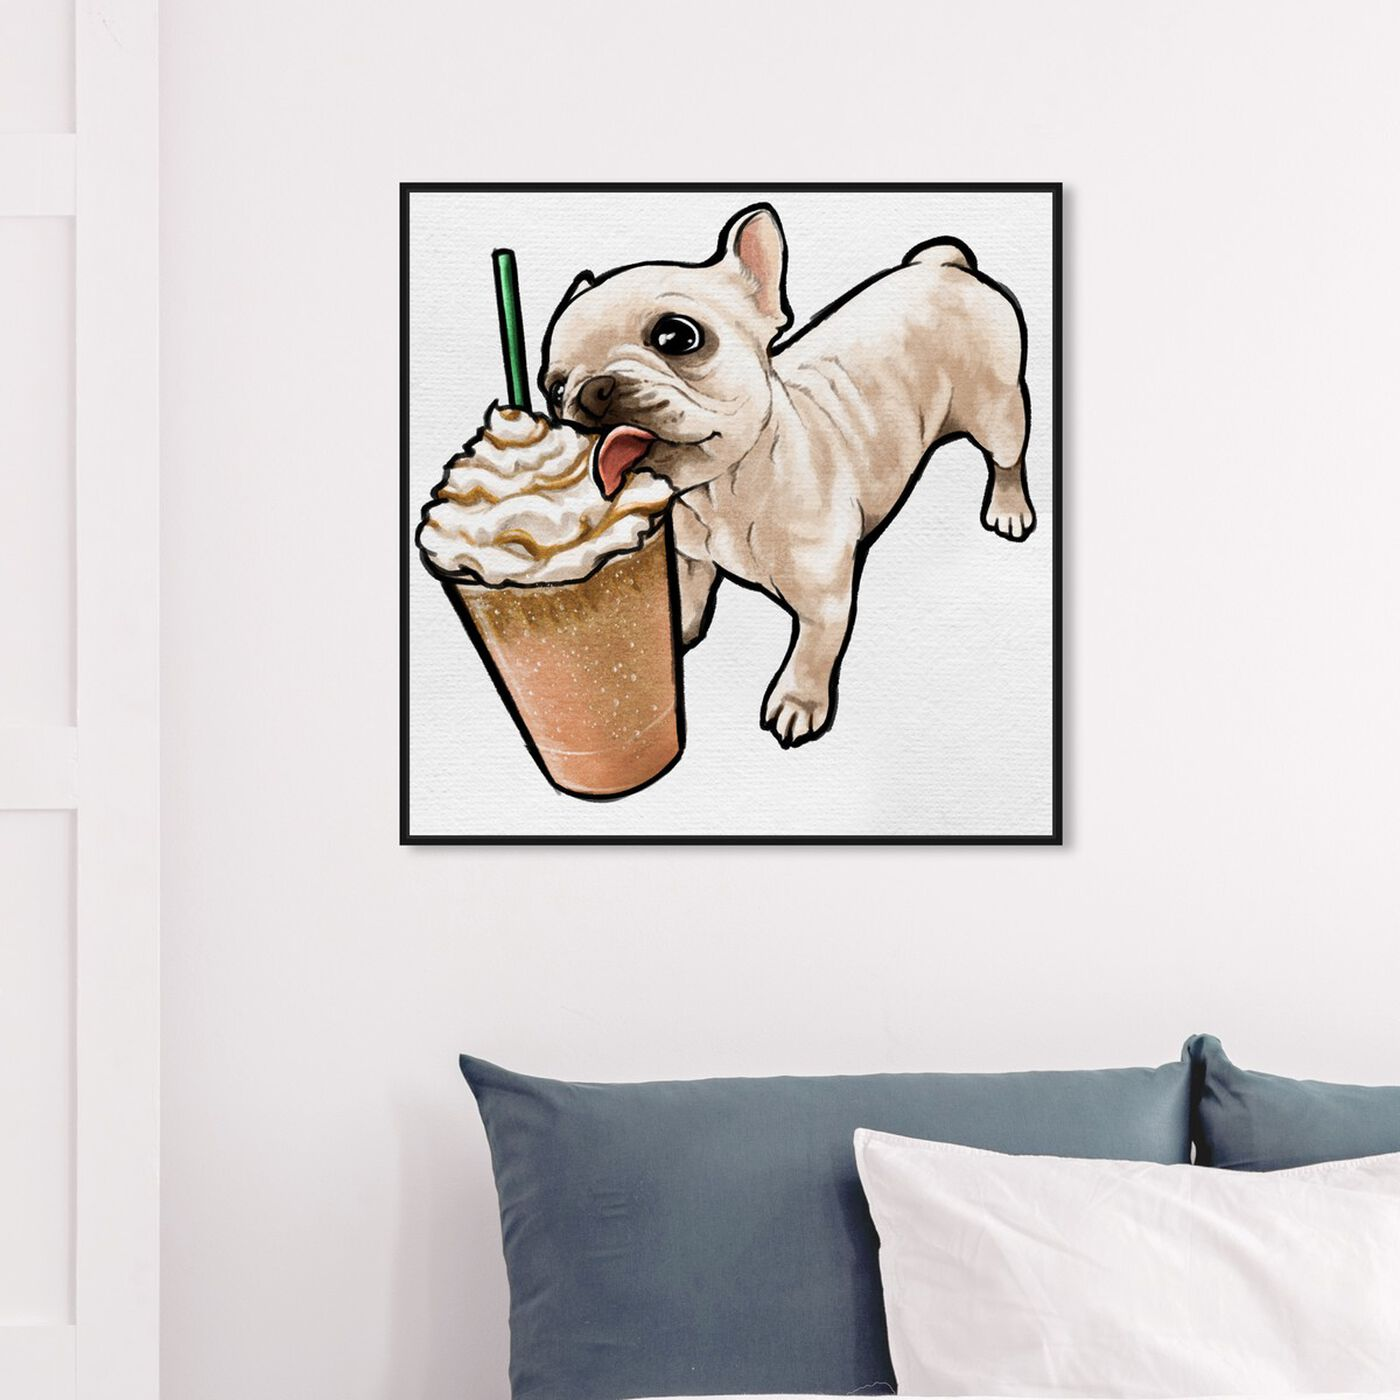 Hanging view of Frenchie and Frappe featuring animals and dogs and puppies art.